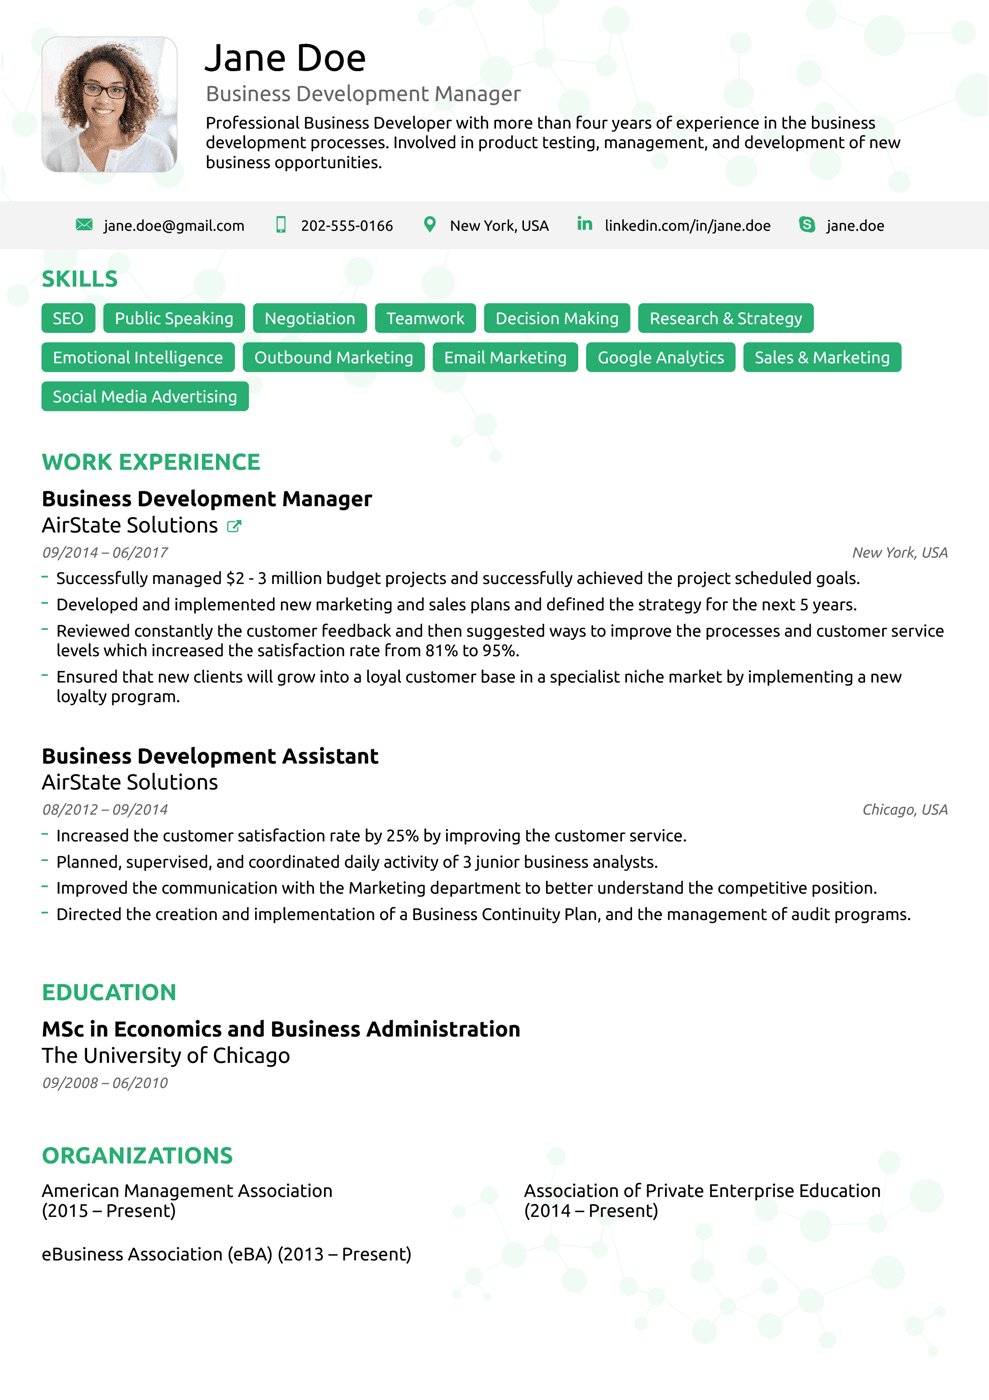 Merveilleux Executive Resume Template